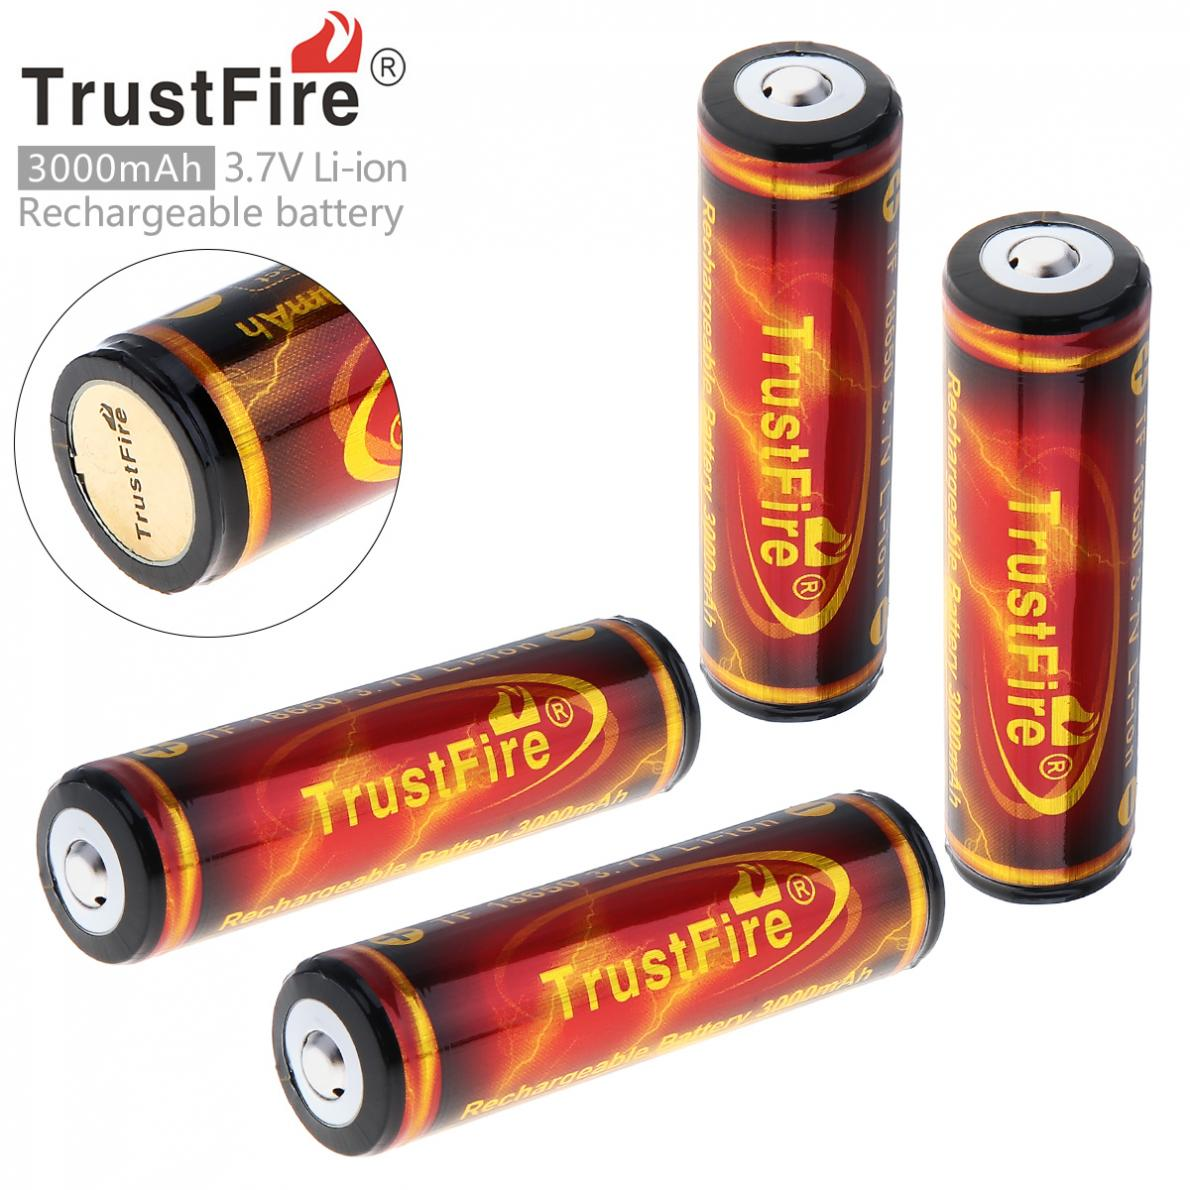 4 Pieces/Lot TrustFire Genuine Full Capacity 3000mAh 18650 3.7V Li-ion Rechargeable Battery with Protected PCB цена